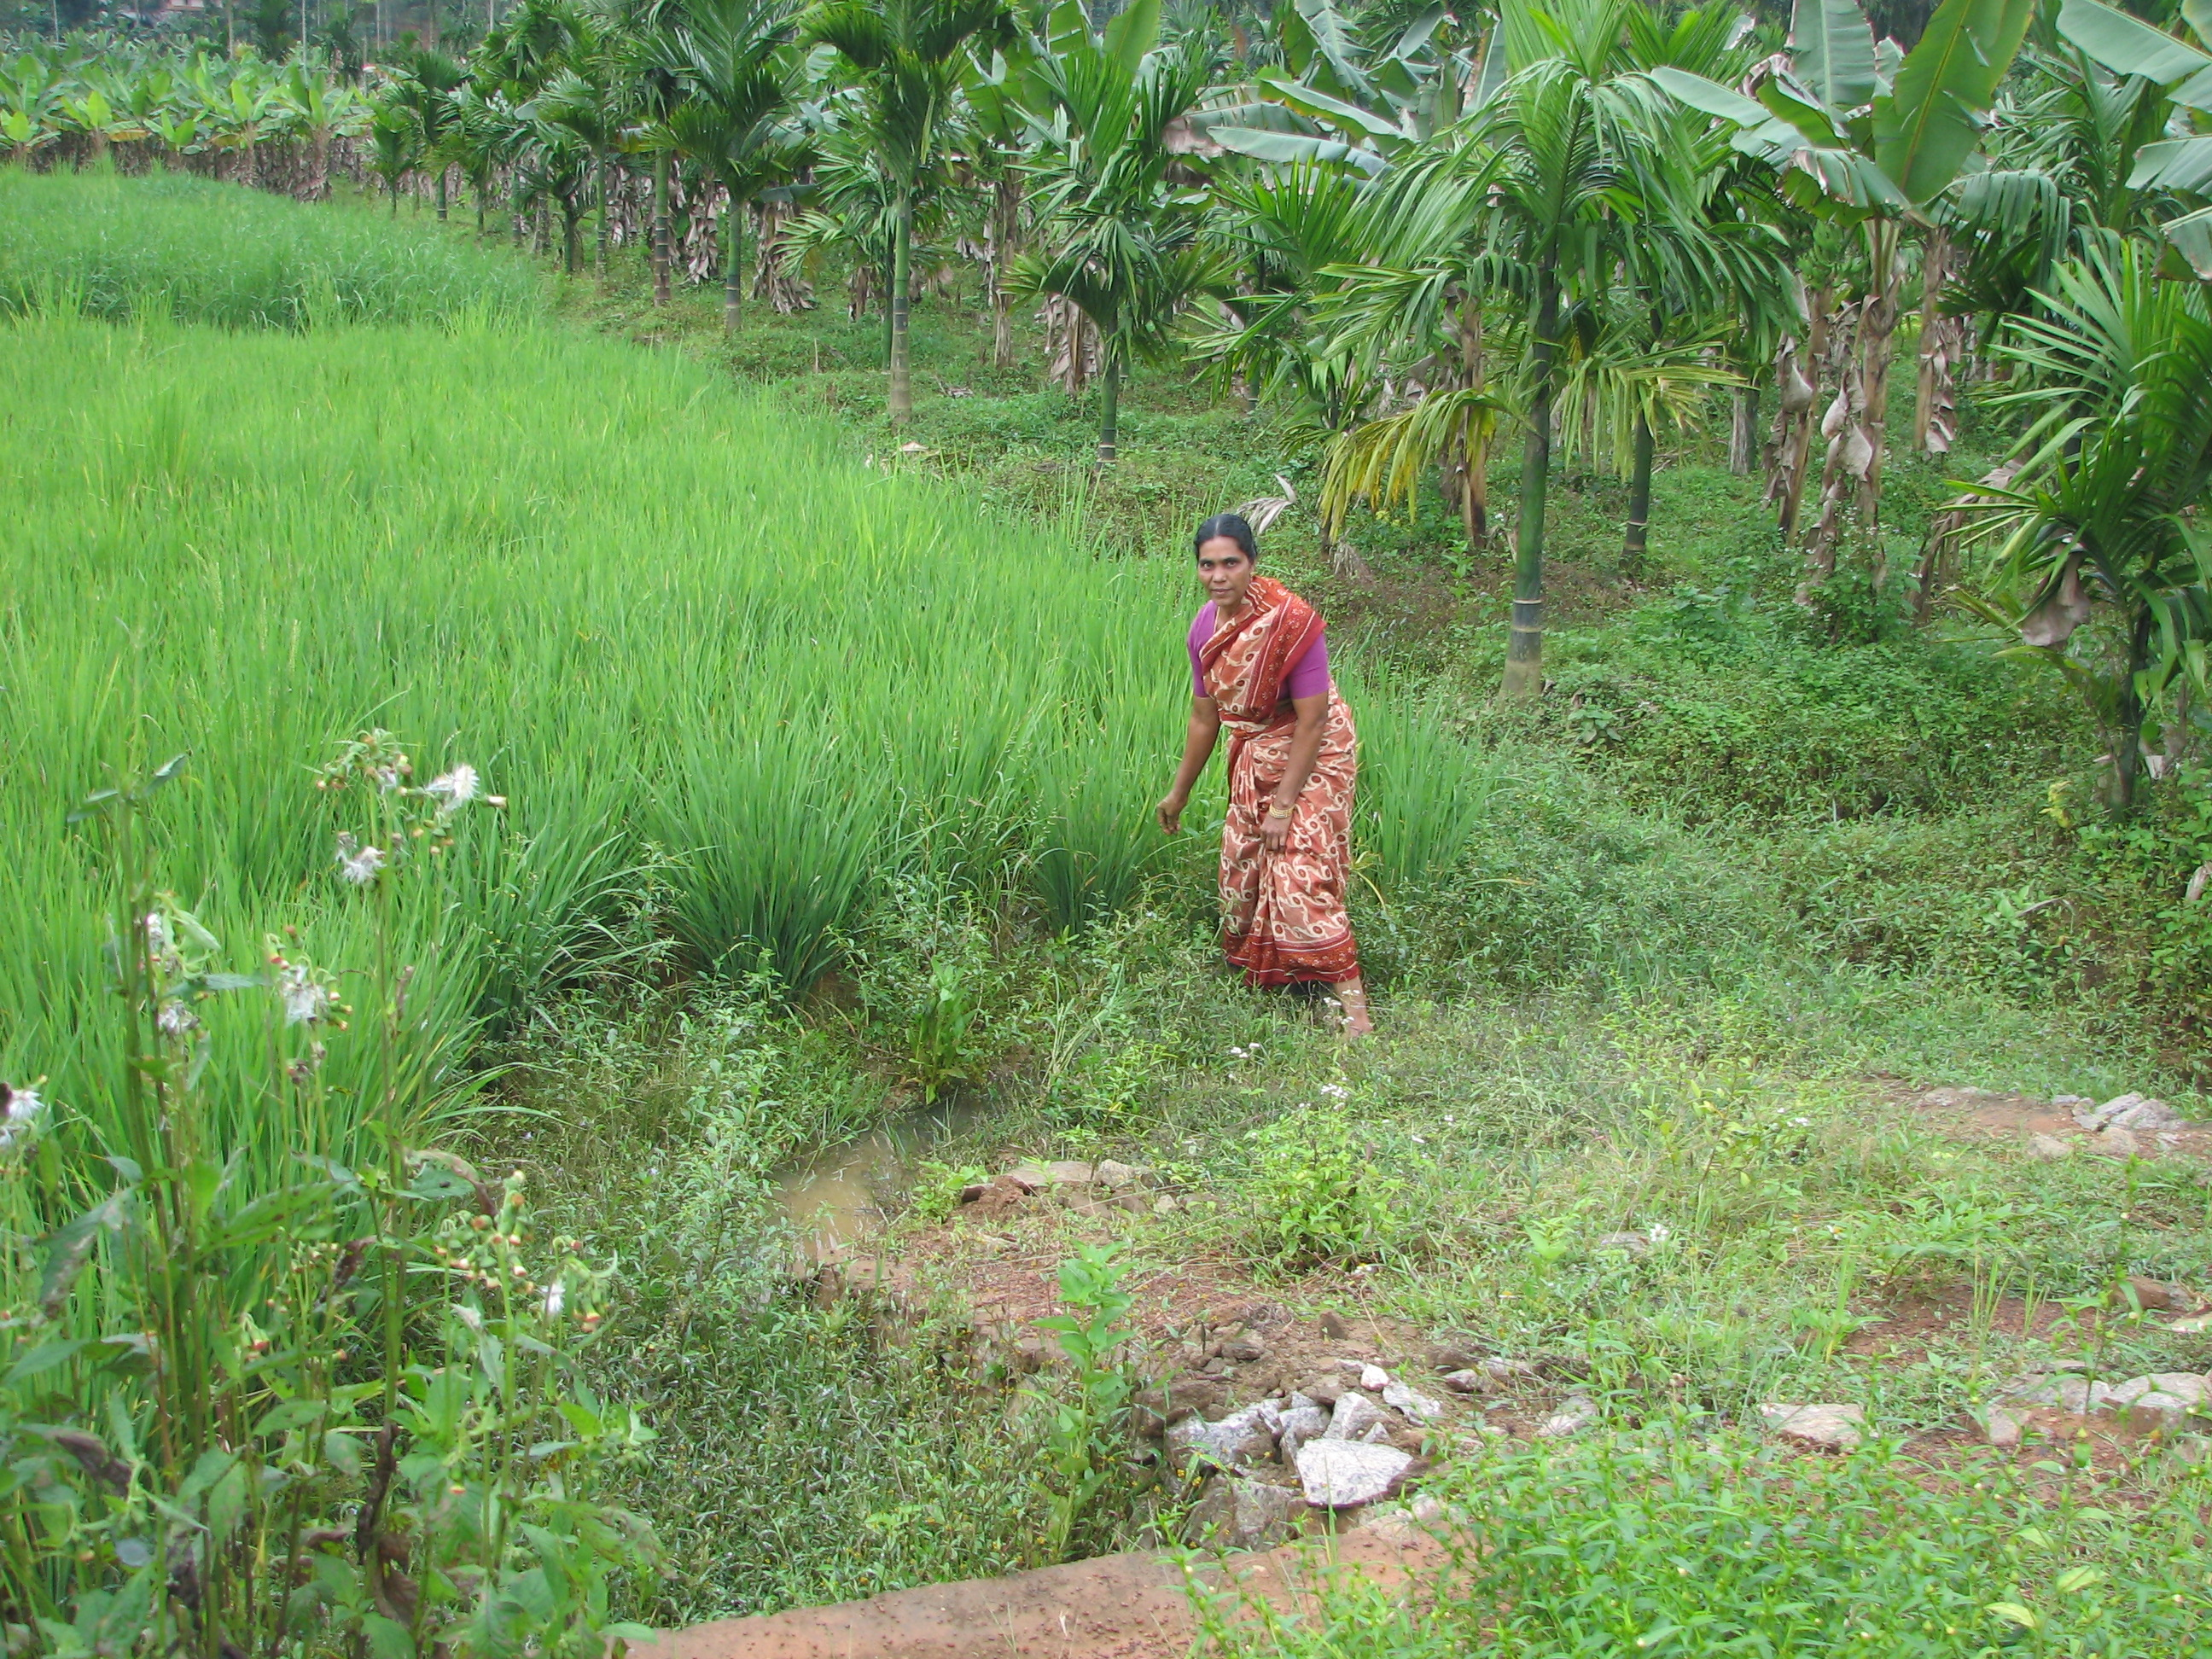 Farmer showing her SRI rice field